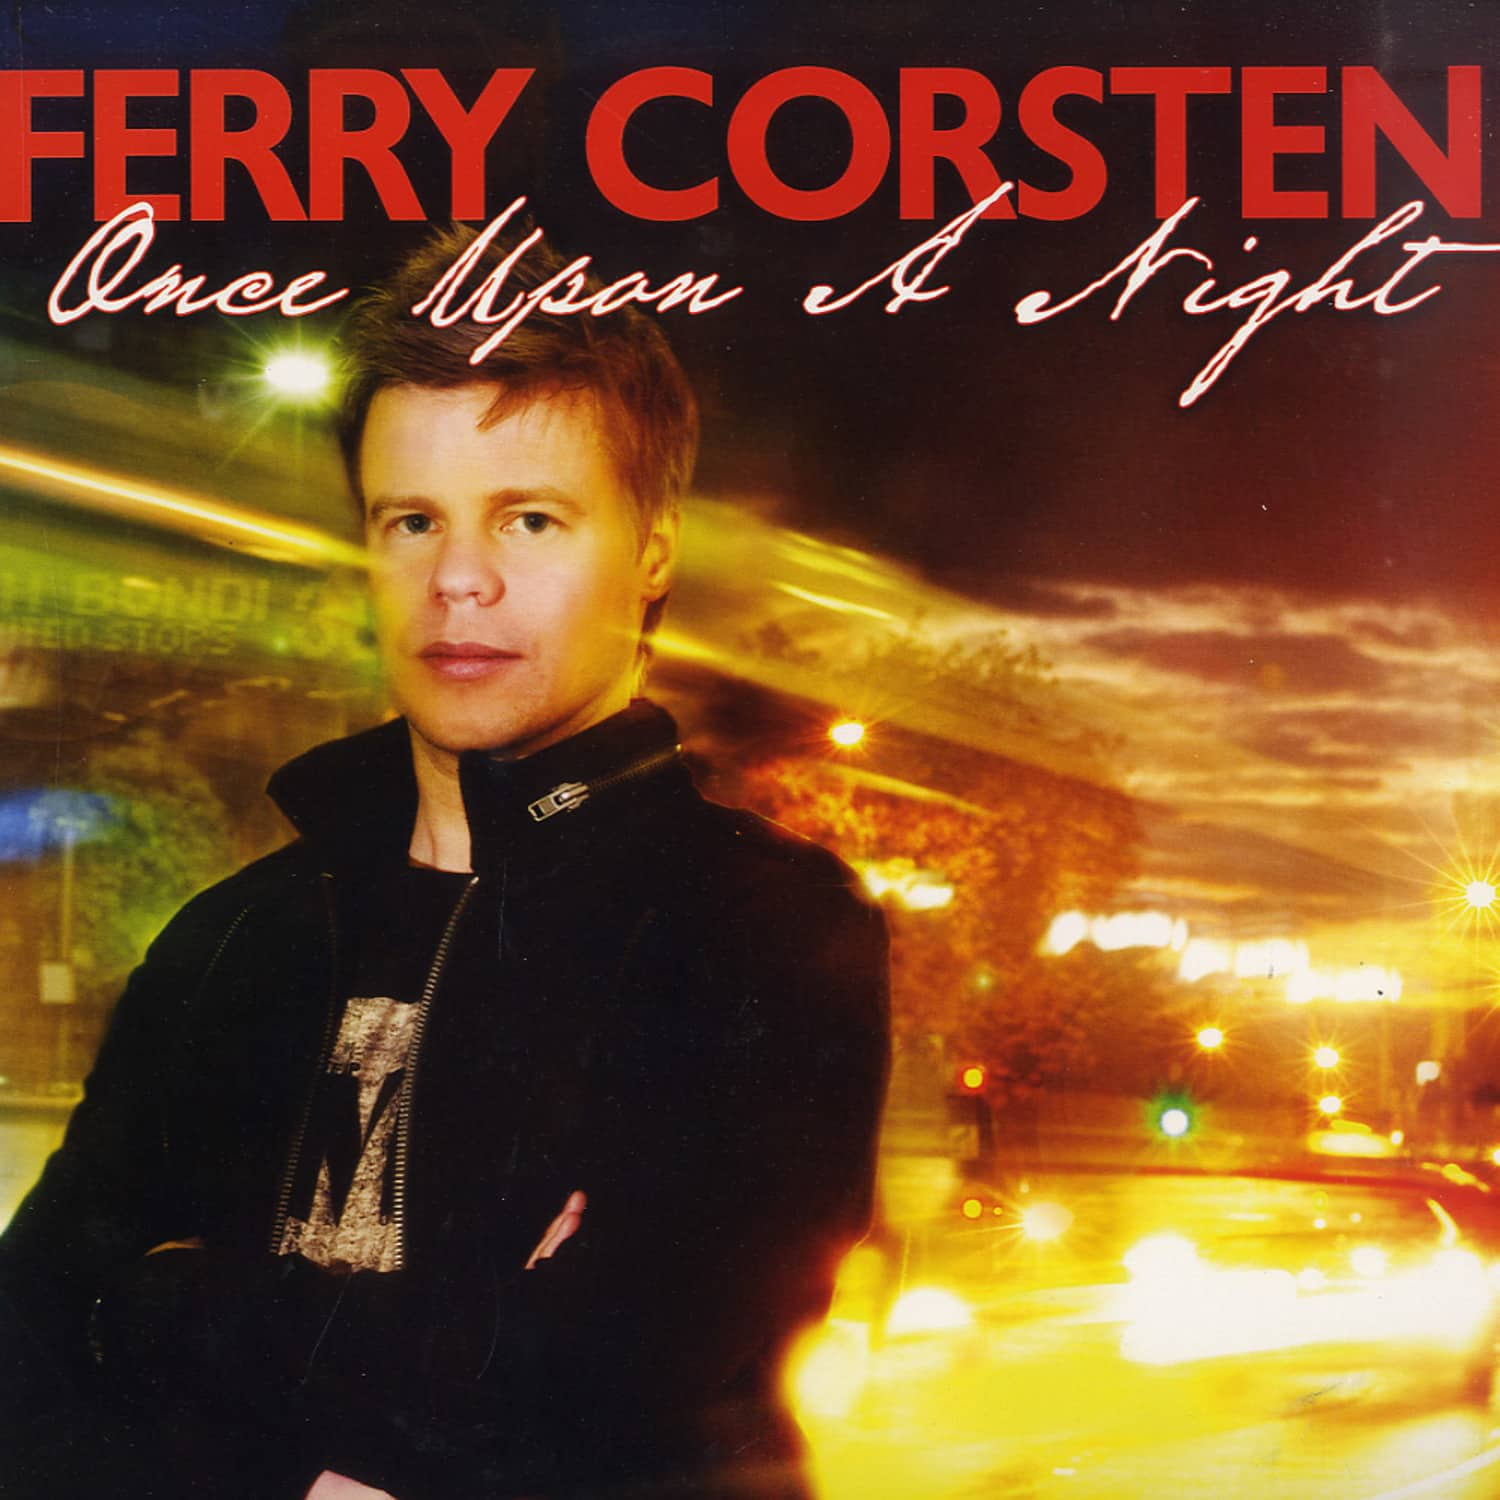 Ferry Corsten - ONCE UPON A NIGHT 2